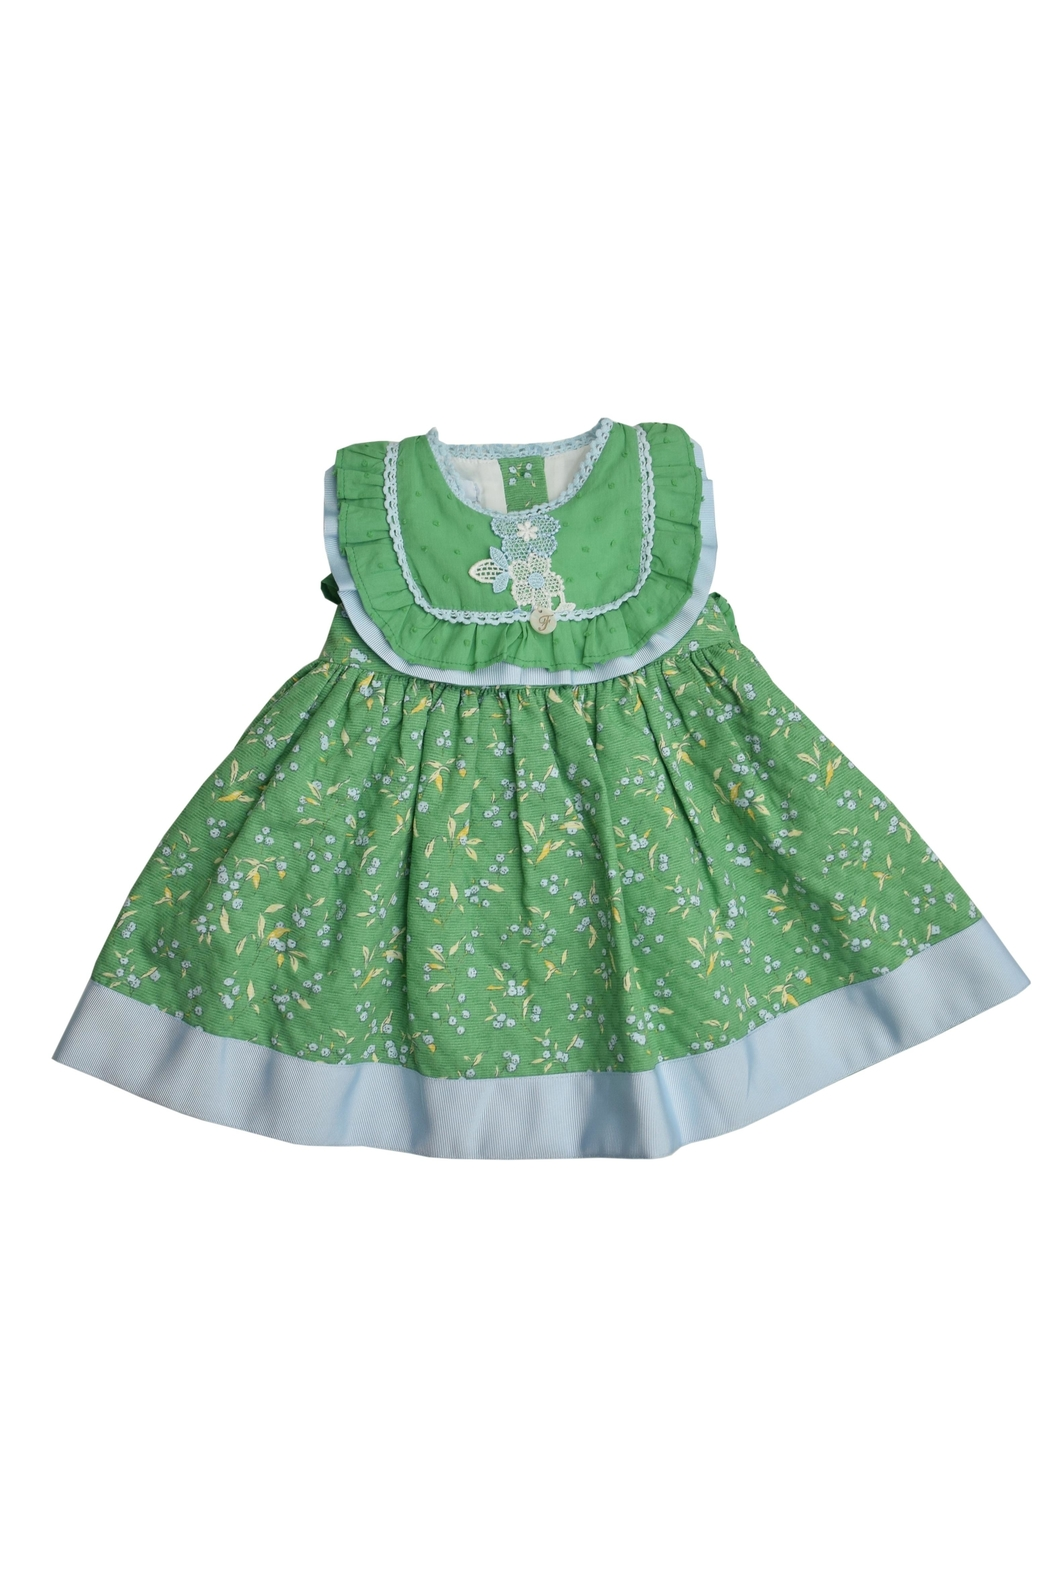 Foque Green Floral Dress - Main Image